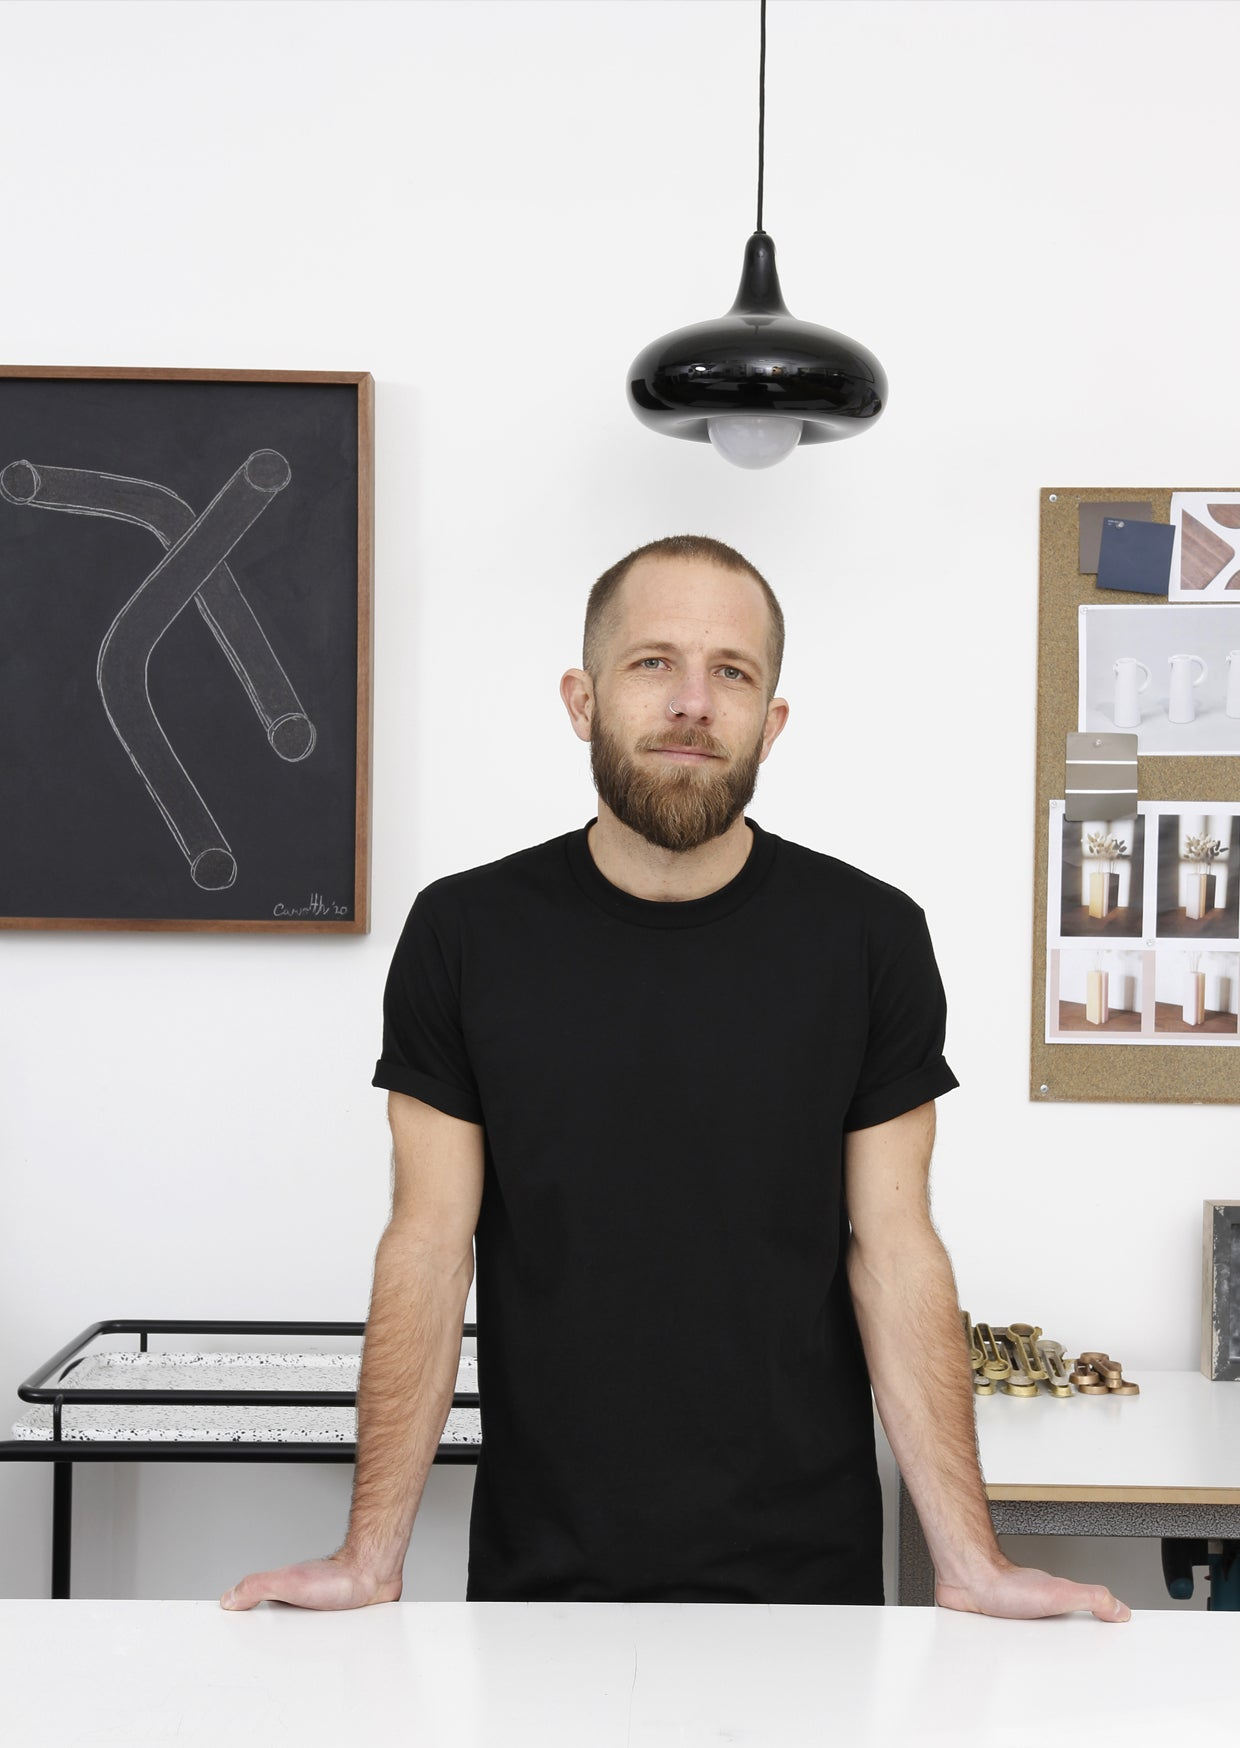 Meet the Maker - Dean Toepfer